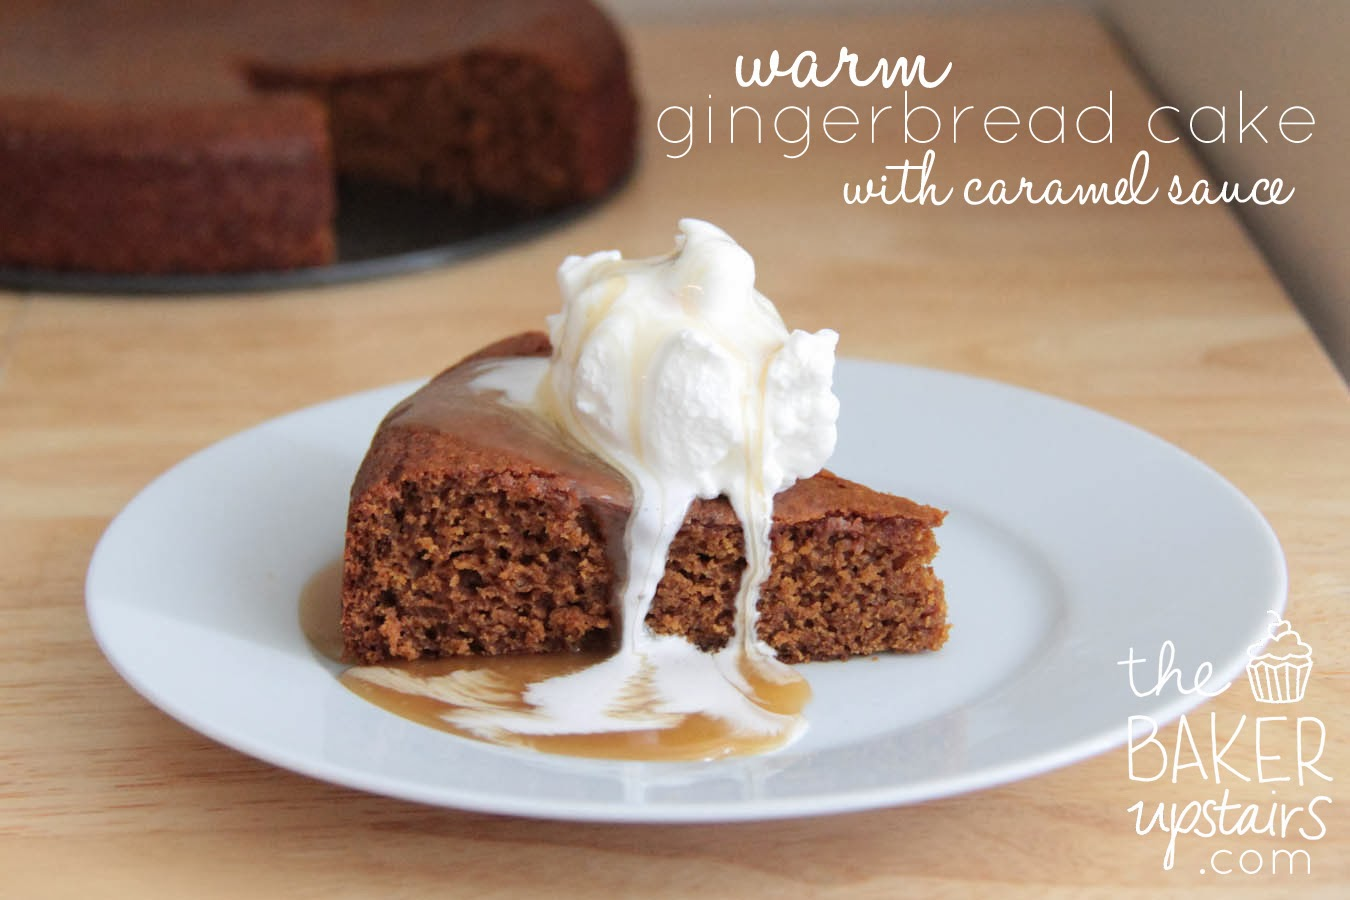 The Baker Upstairs Warm Gingerbread Cake With Caramel Sauce